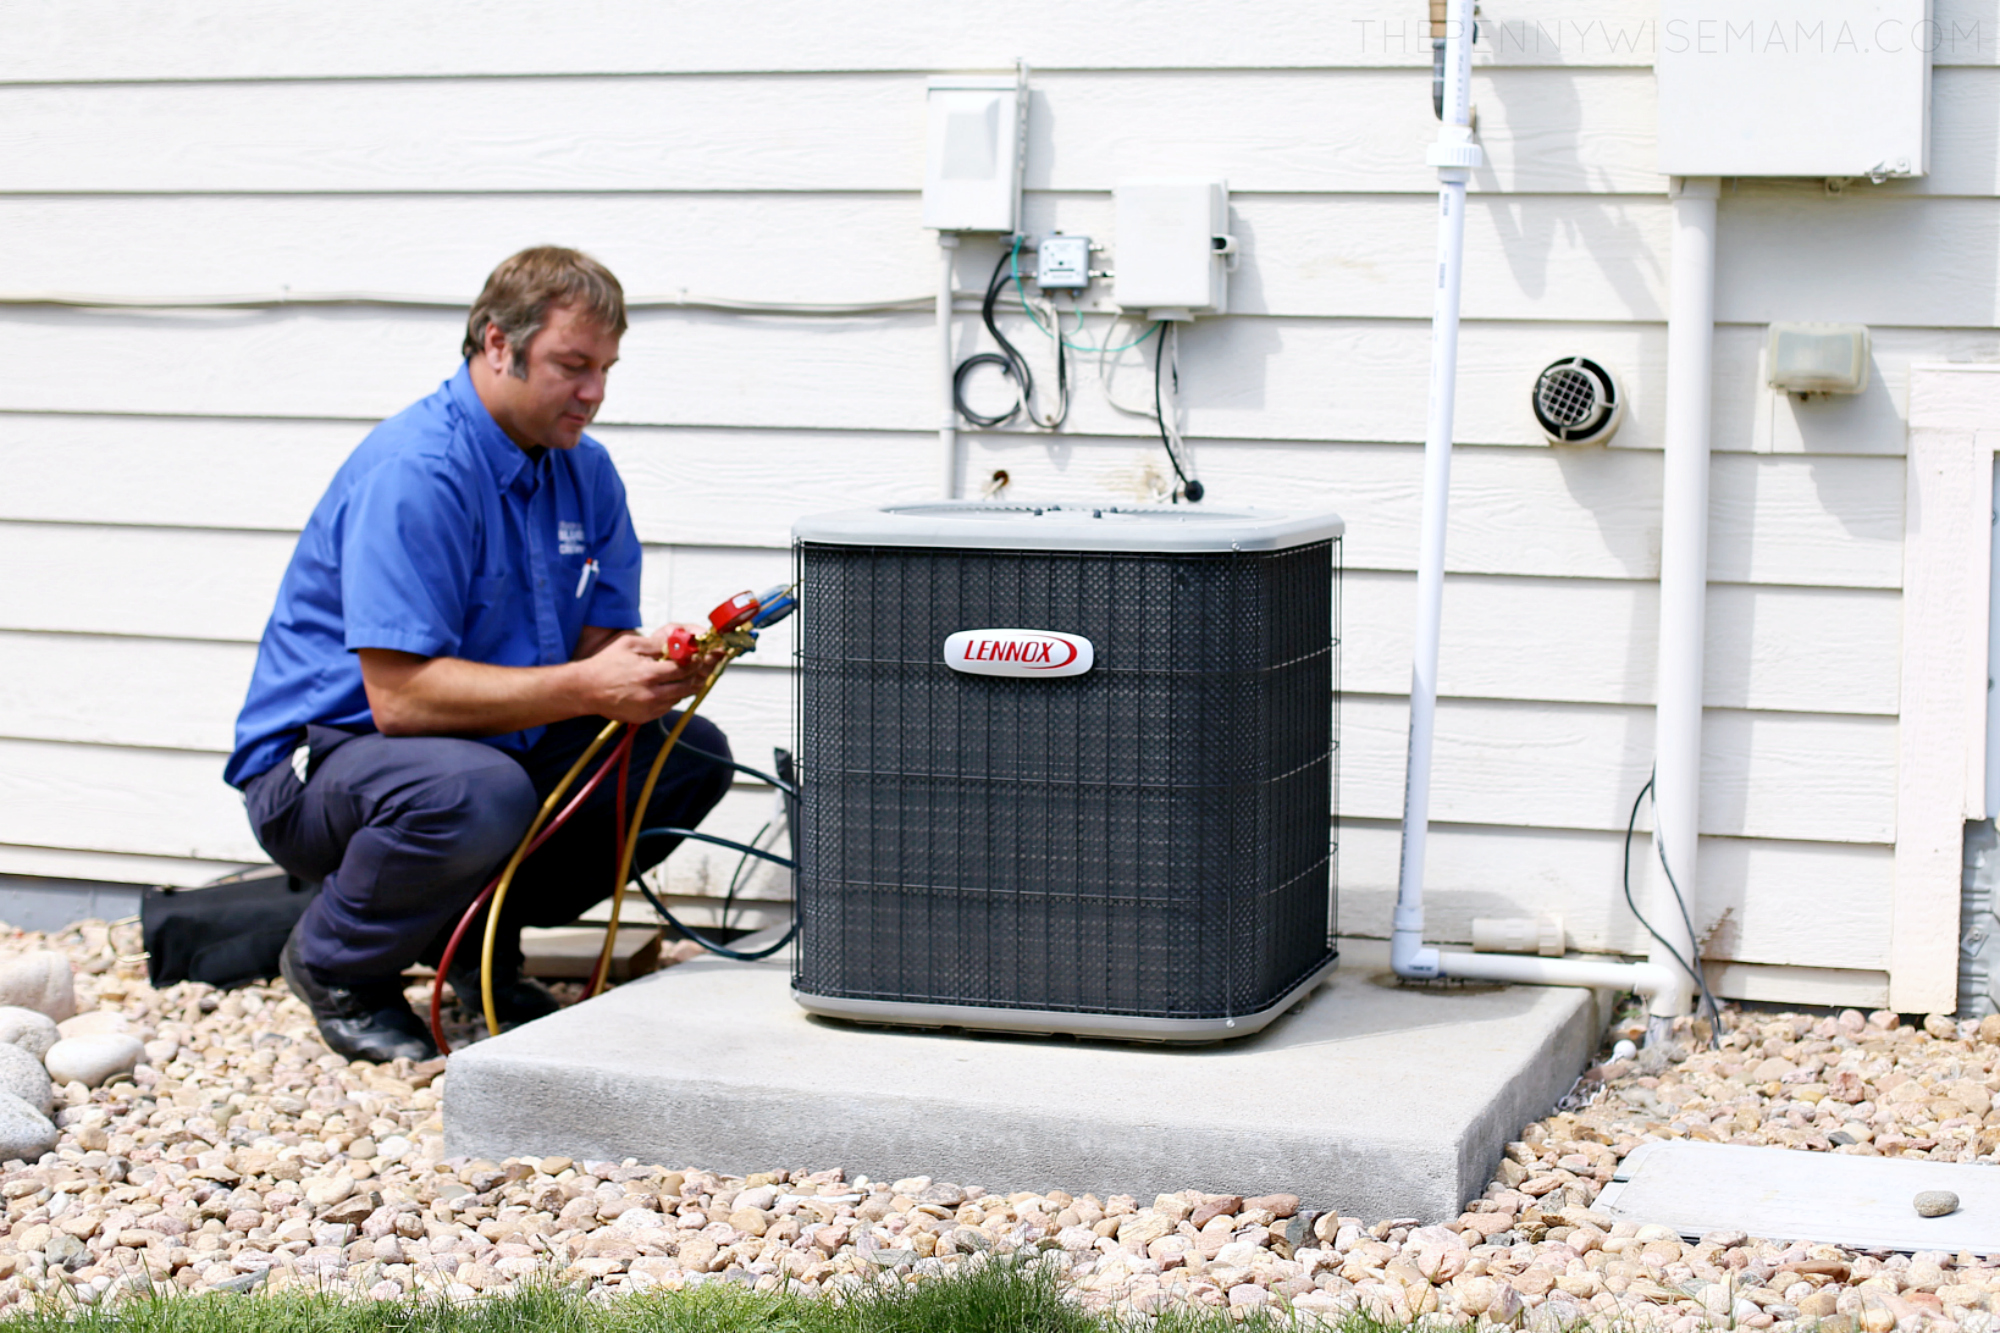 Get Your Home Ready for Fall with an HVAC Checkup The PennyWiseMama #31529A